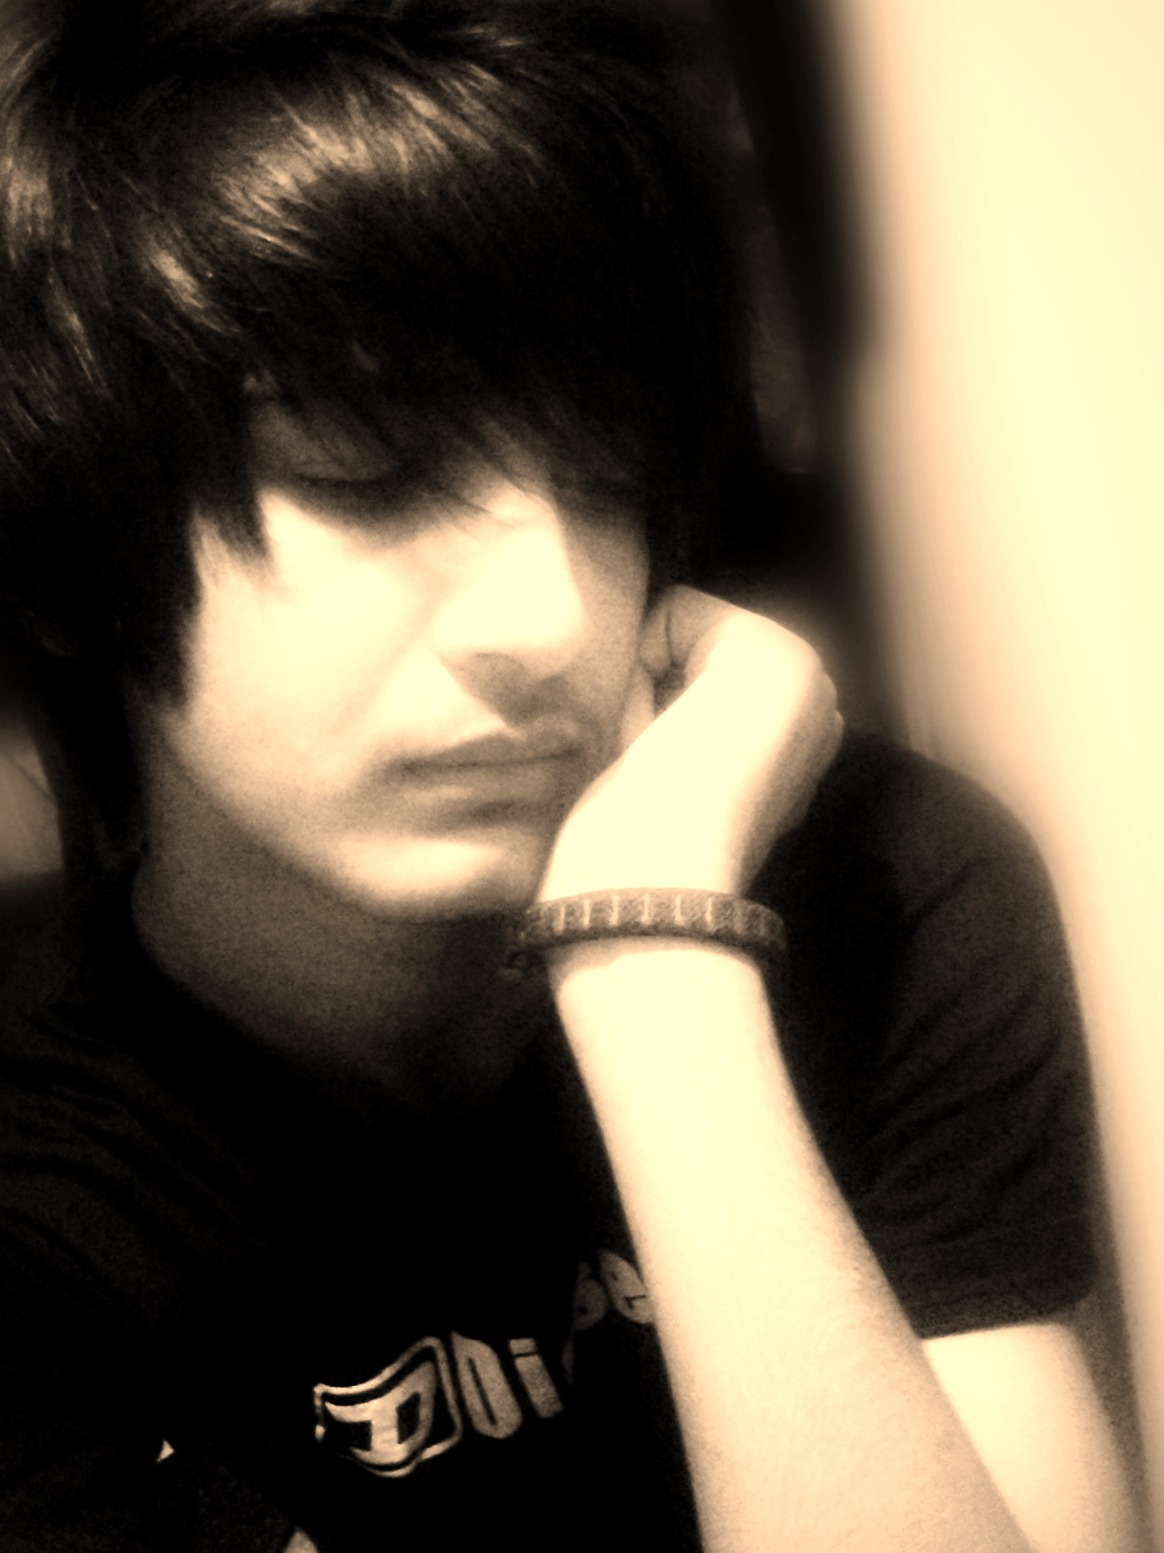 boy wallpaper sad emo boy wallpaper sad emo boy wallpaper 1164x1553